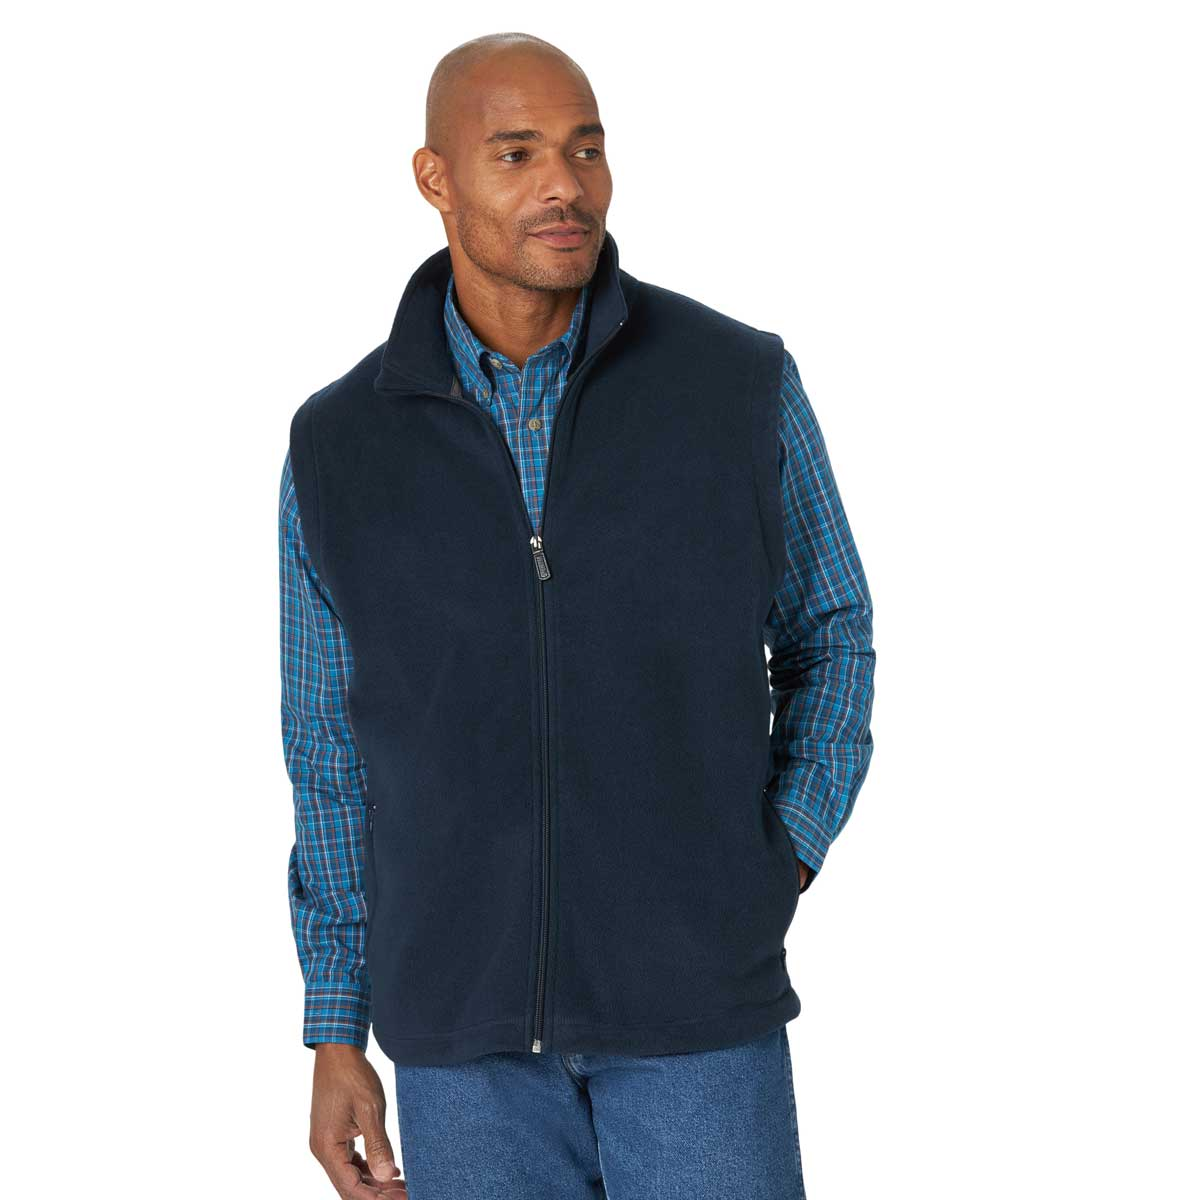 Wrangler Men's Rugged Wear Fleece Zip Up Vest - Dark Sapphire